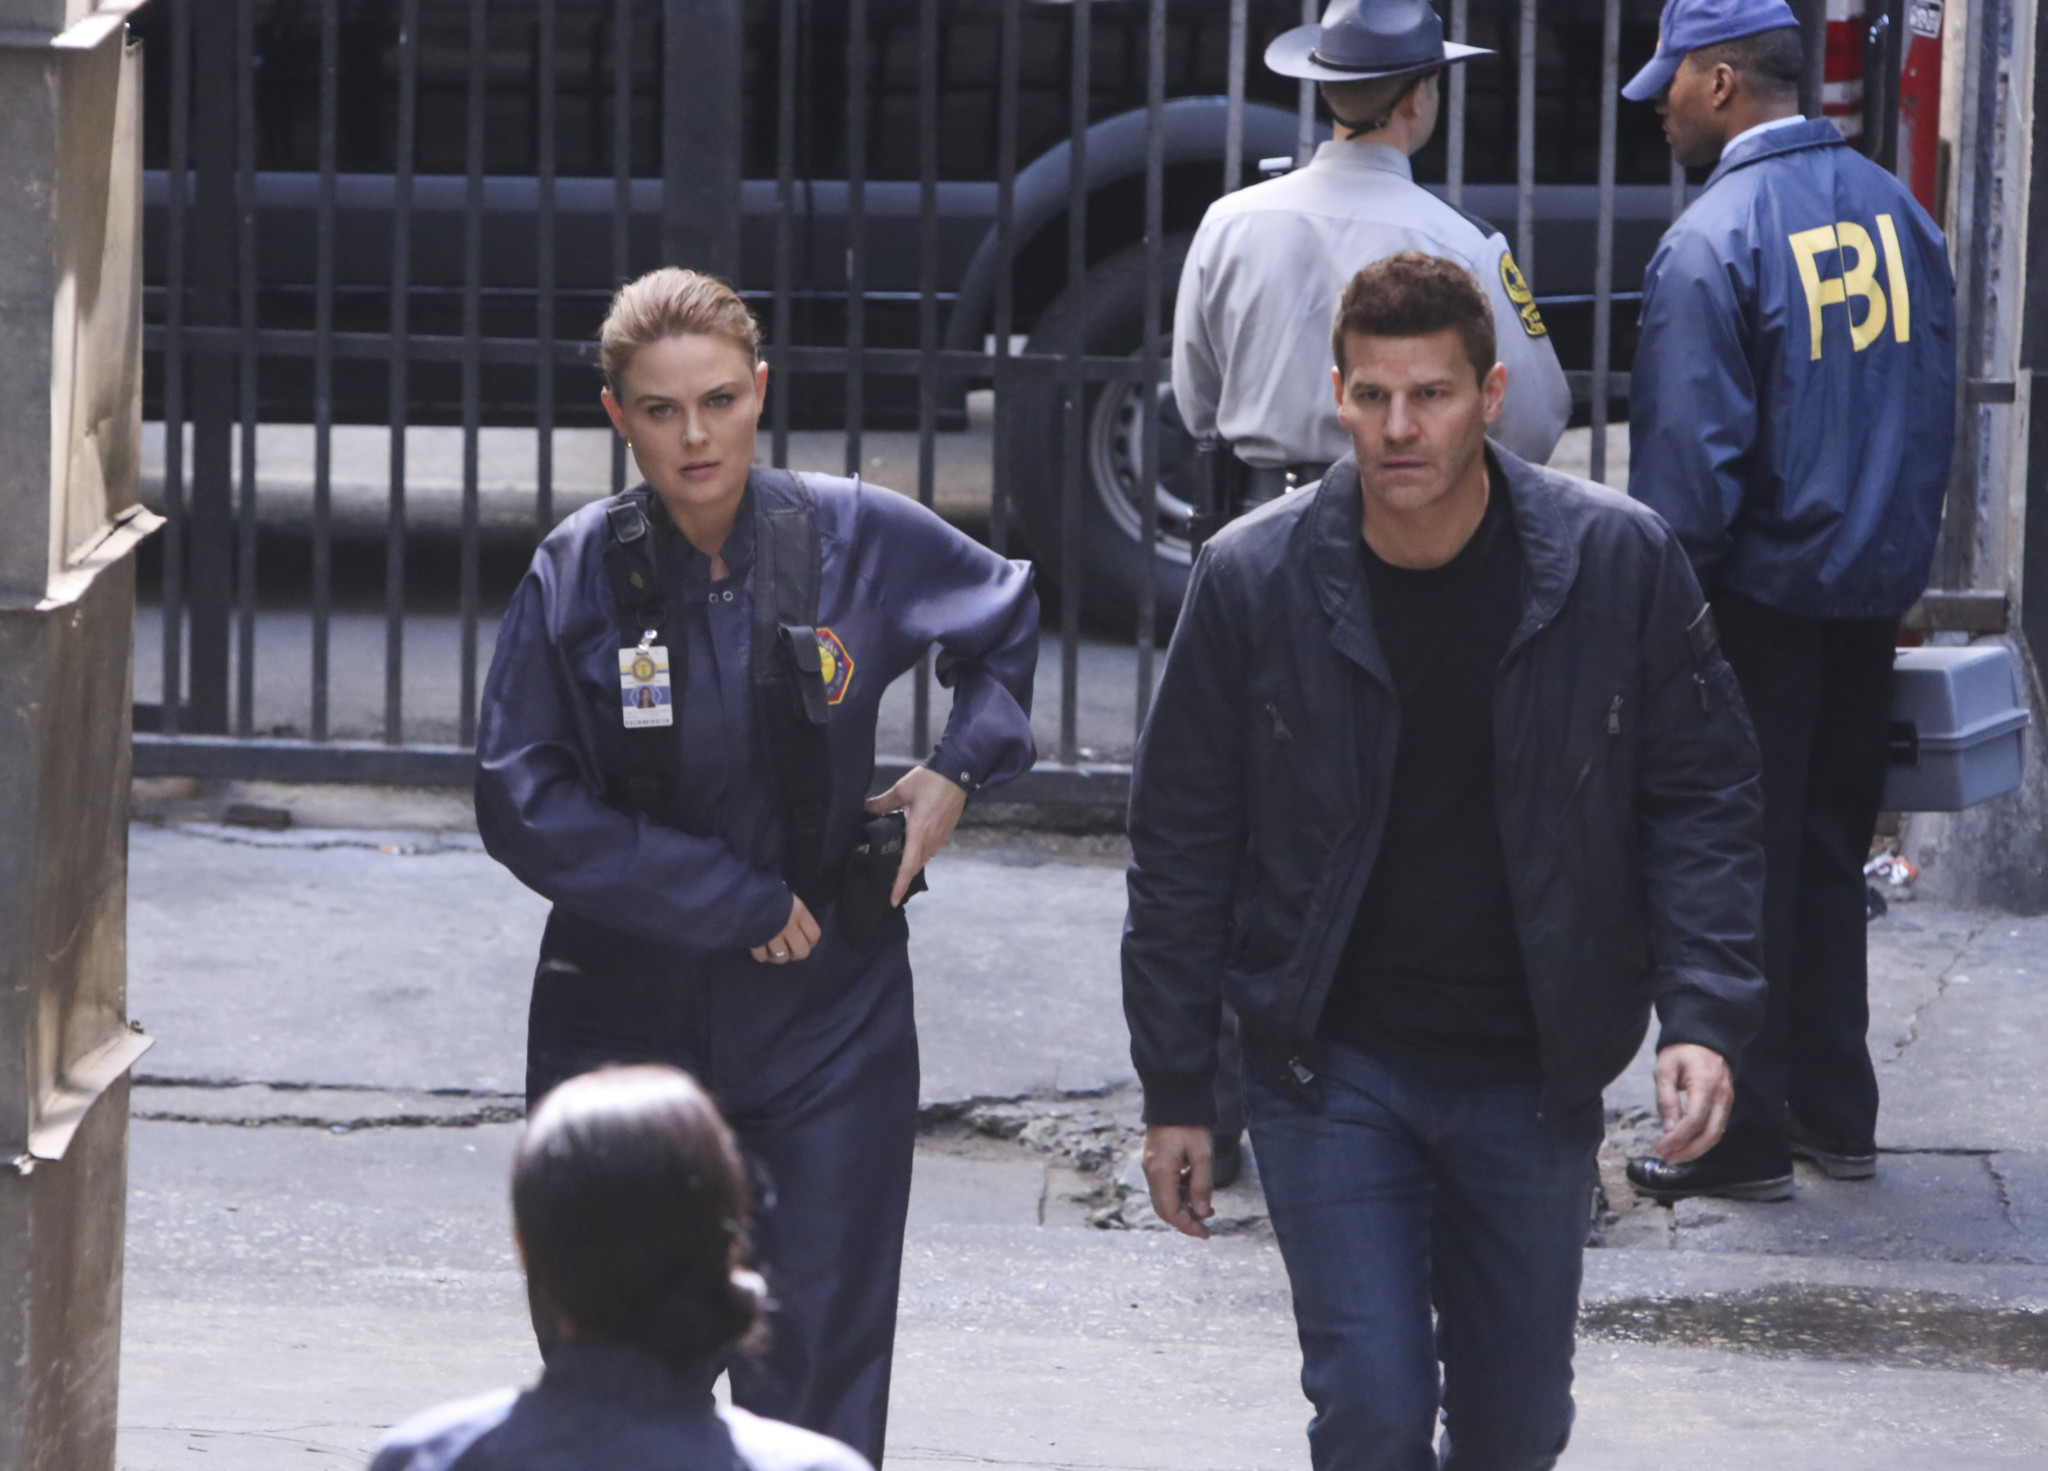 'Bones': Emily Deschanel, David Boreanaz and Producers Reflect on Their Favorite Episodes